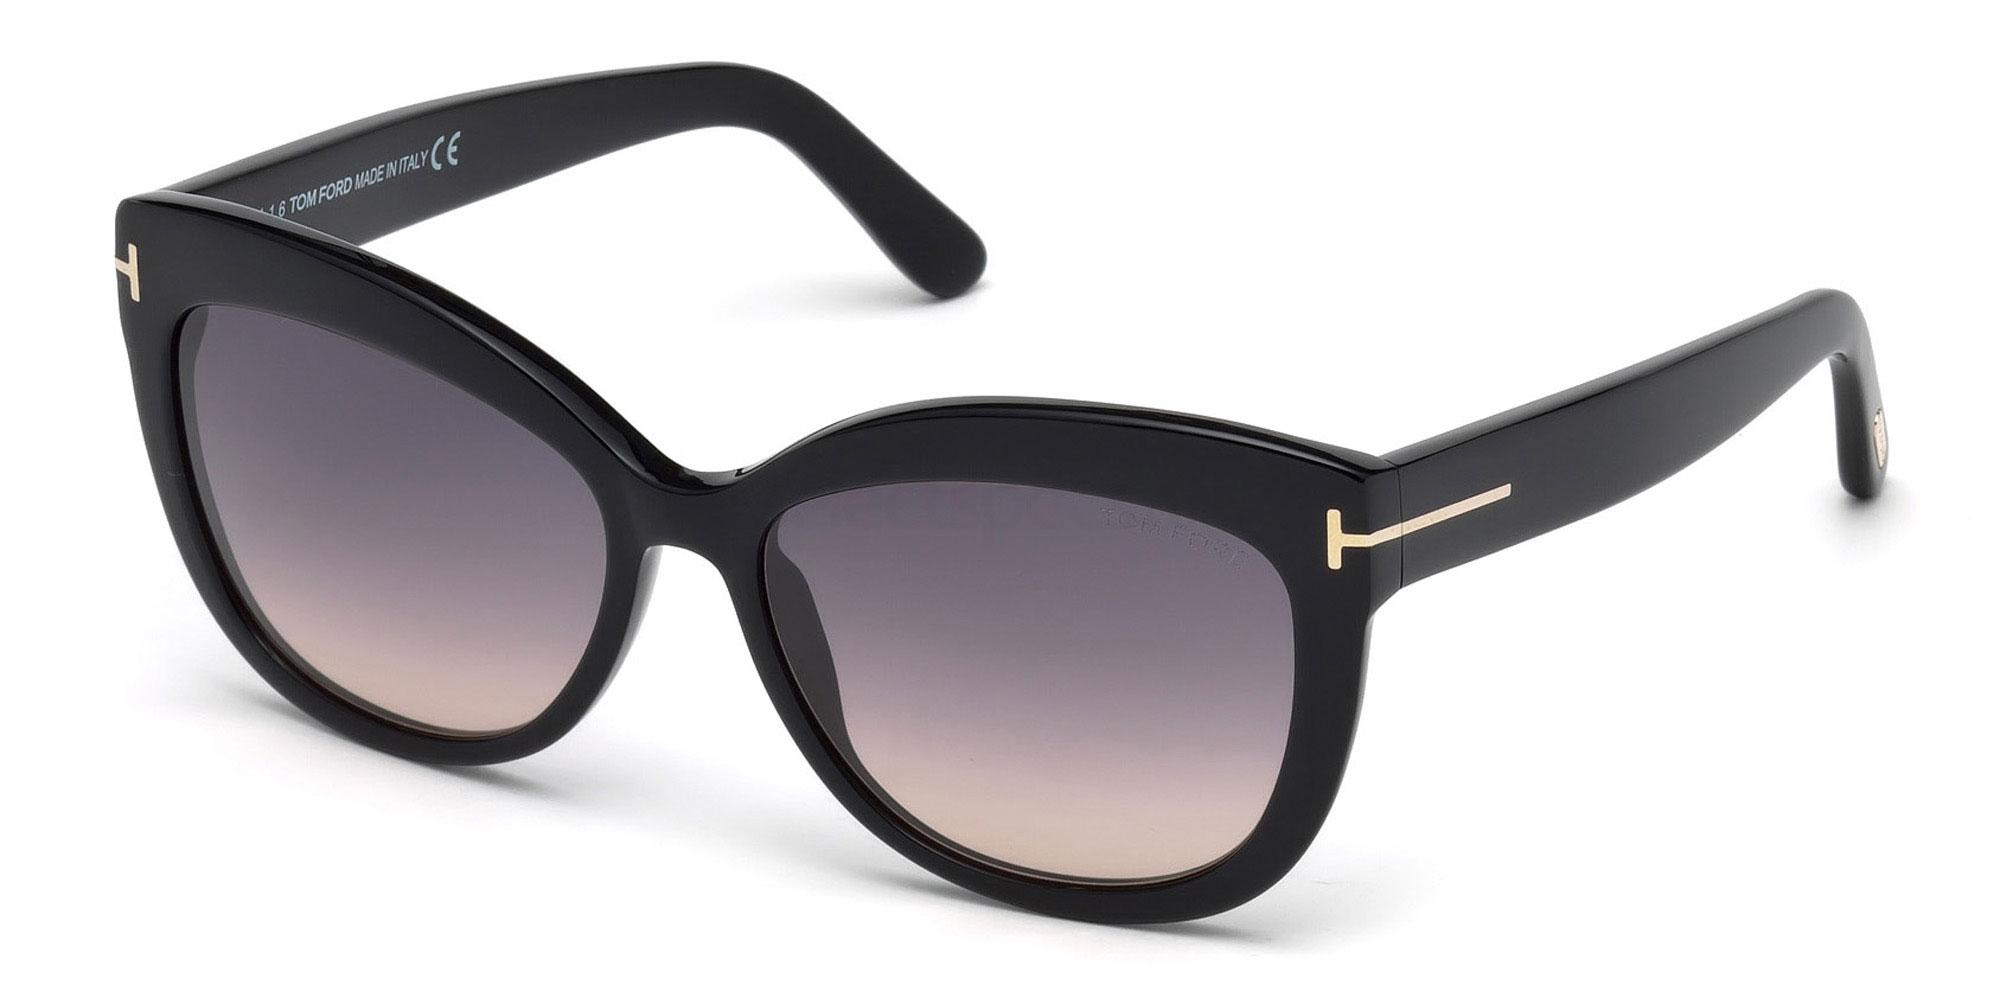 01B FT0524 Sunglasses, Tom Ford